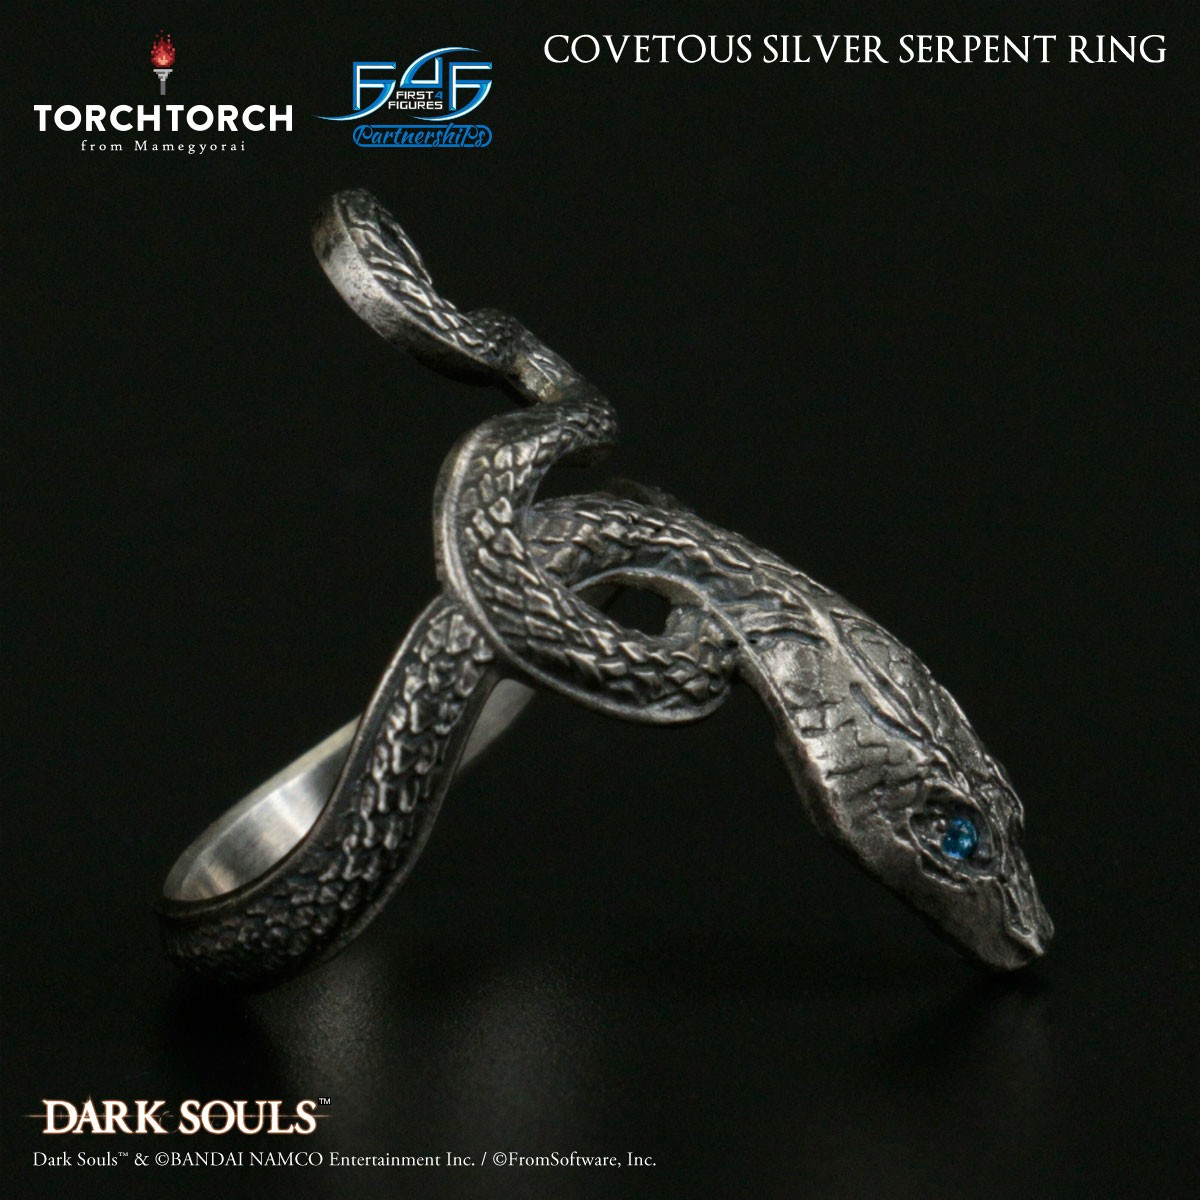 Covetous Silver Serpent Ring